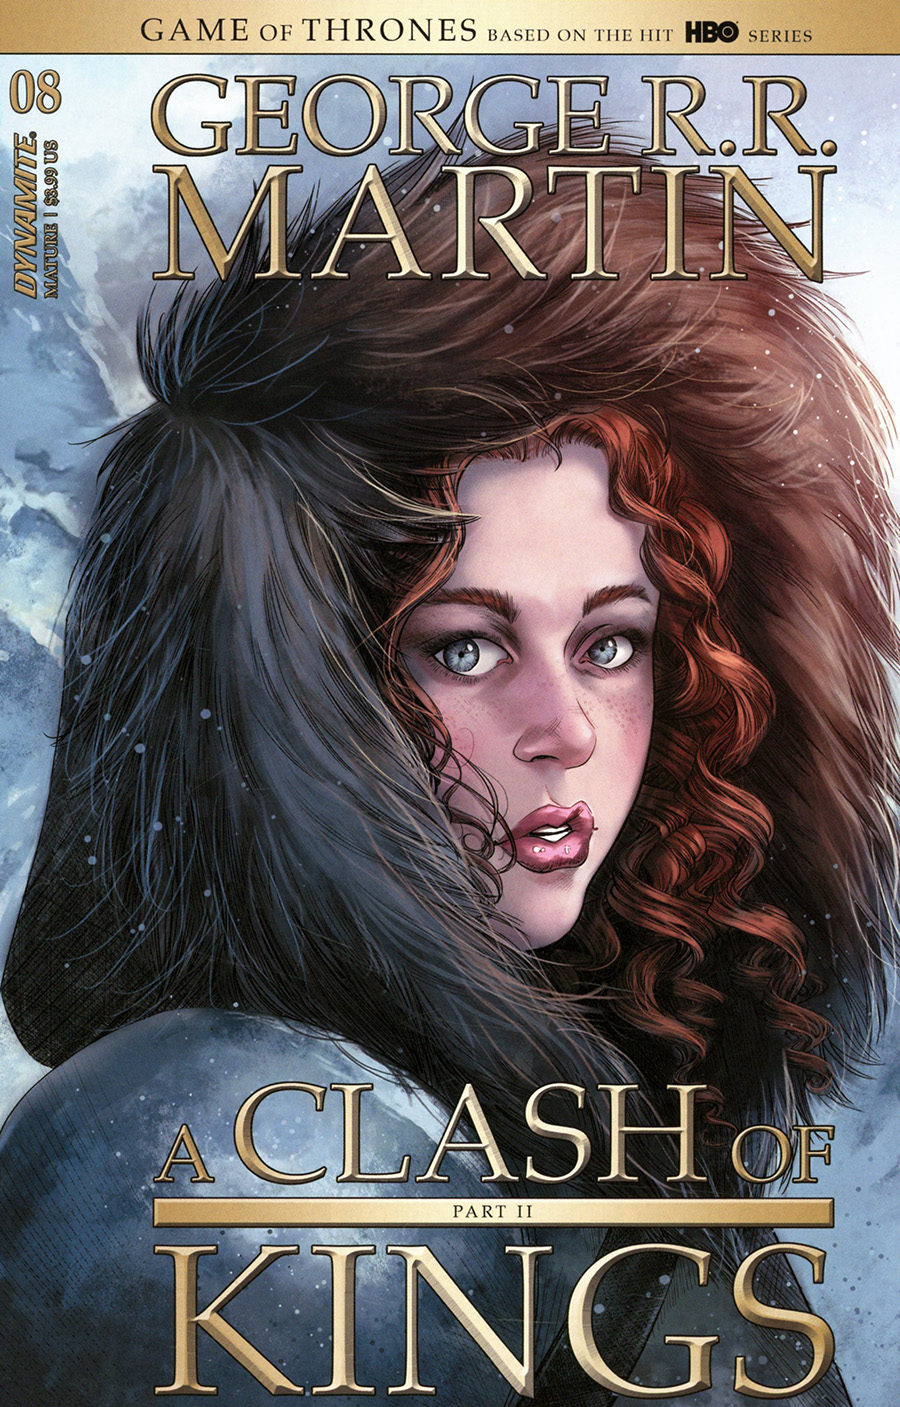 Game Of Thrones Clash Of Kings Vol 2 #8 Cover A Regular Mike Miller Cover